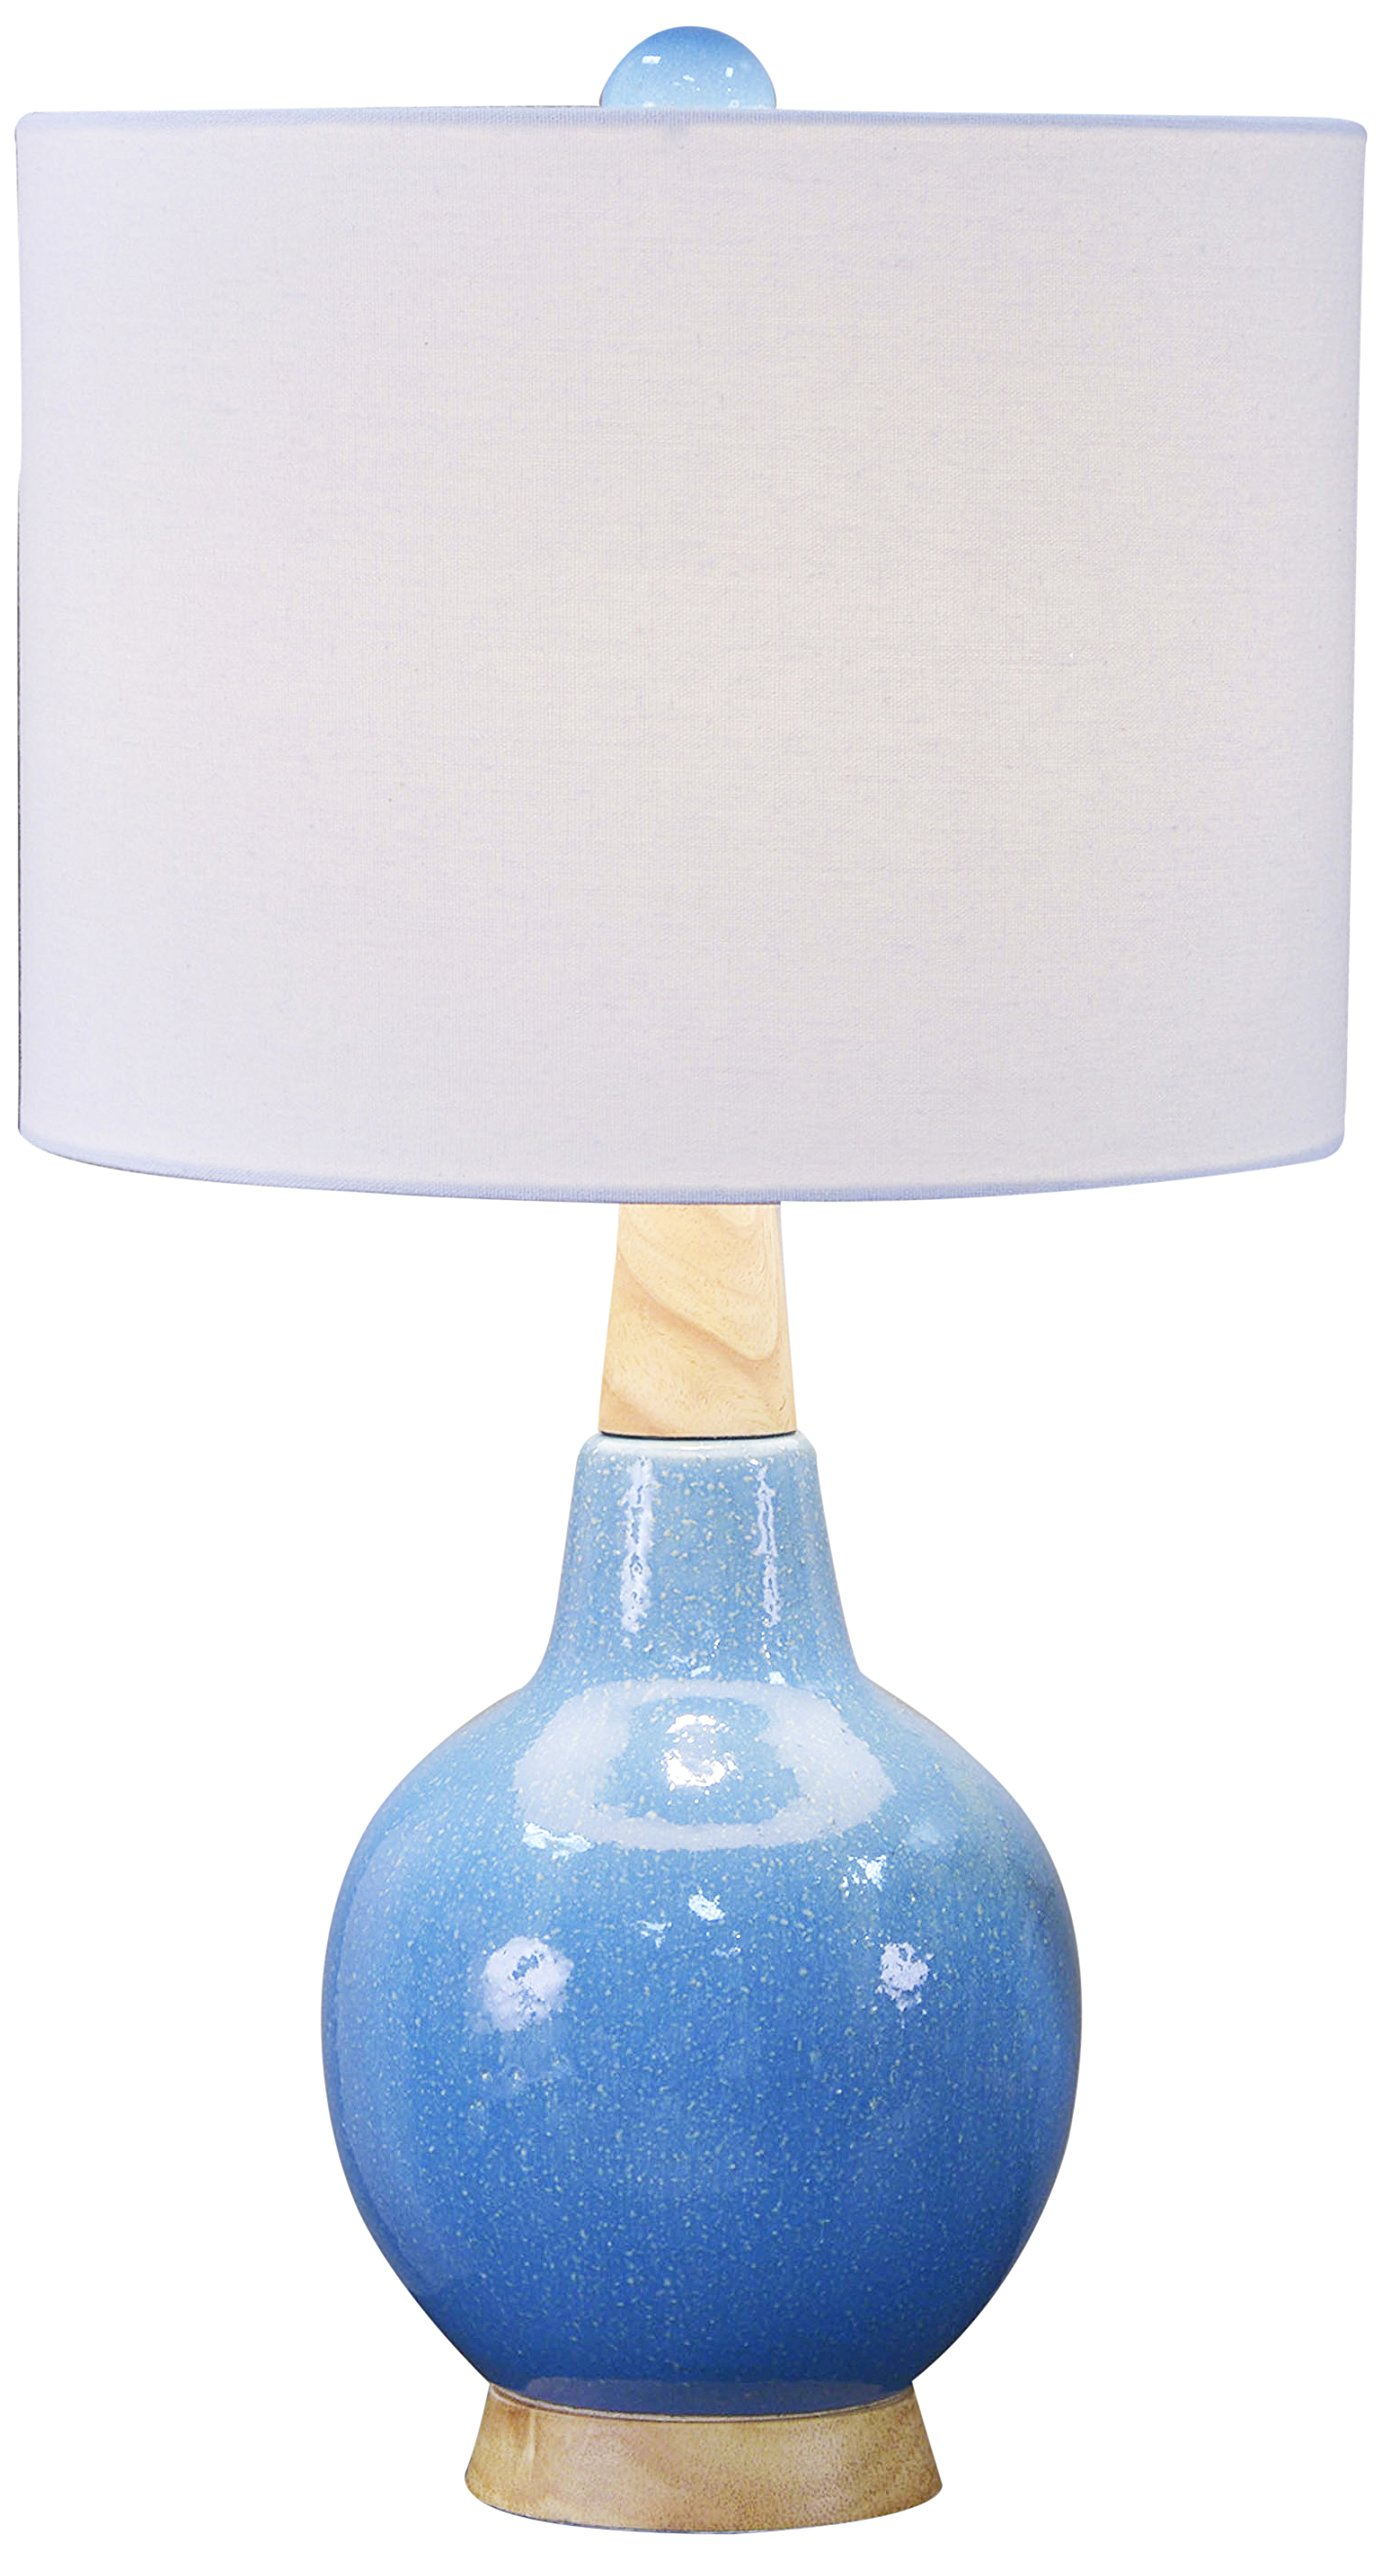 Décor Therapy TL17214 Table Lamp, Spa Blue Speckled